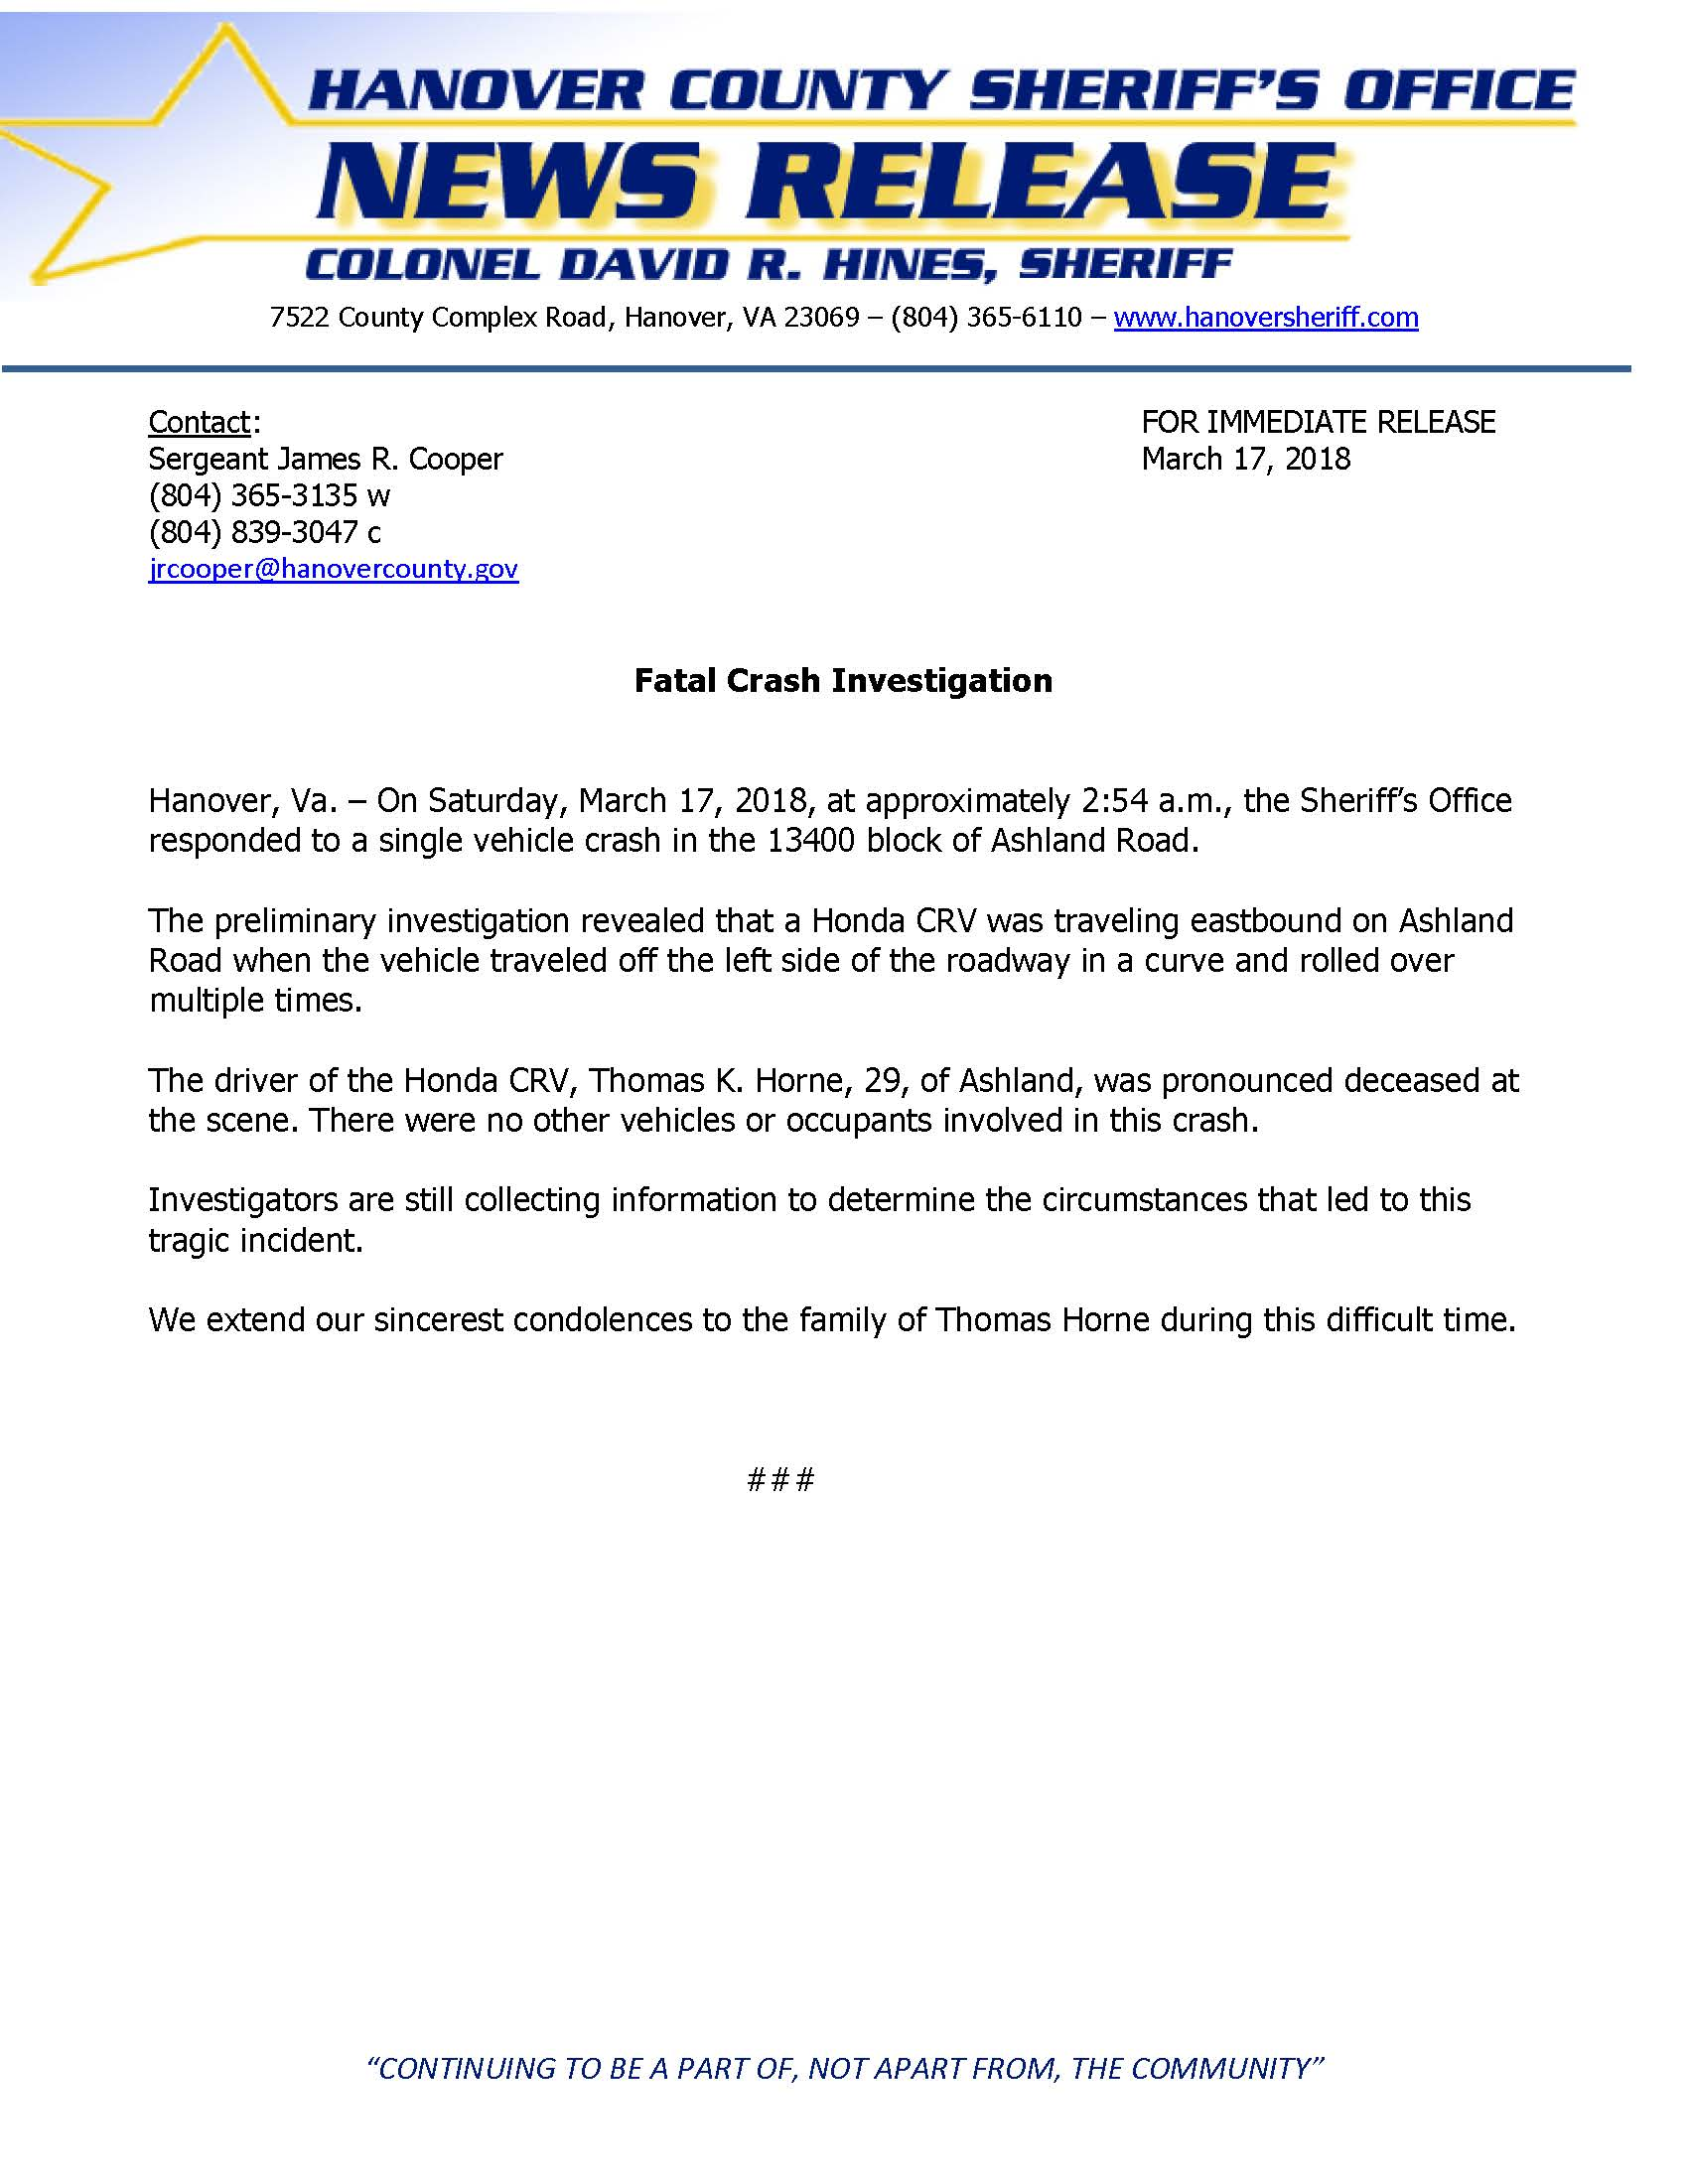 HCSO - Fatal Crash - Ashland Road- March 17, 2018